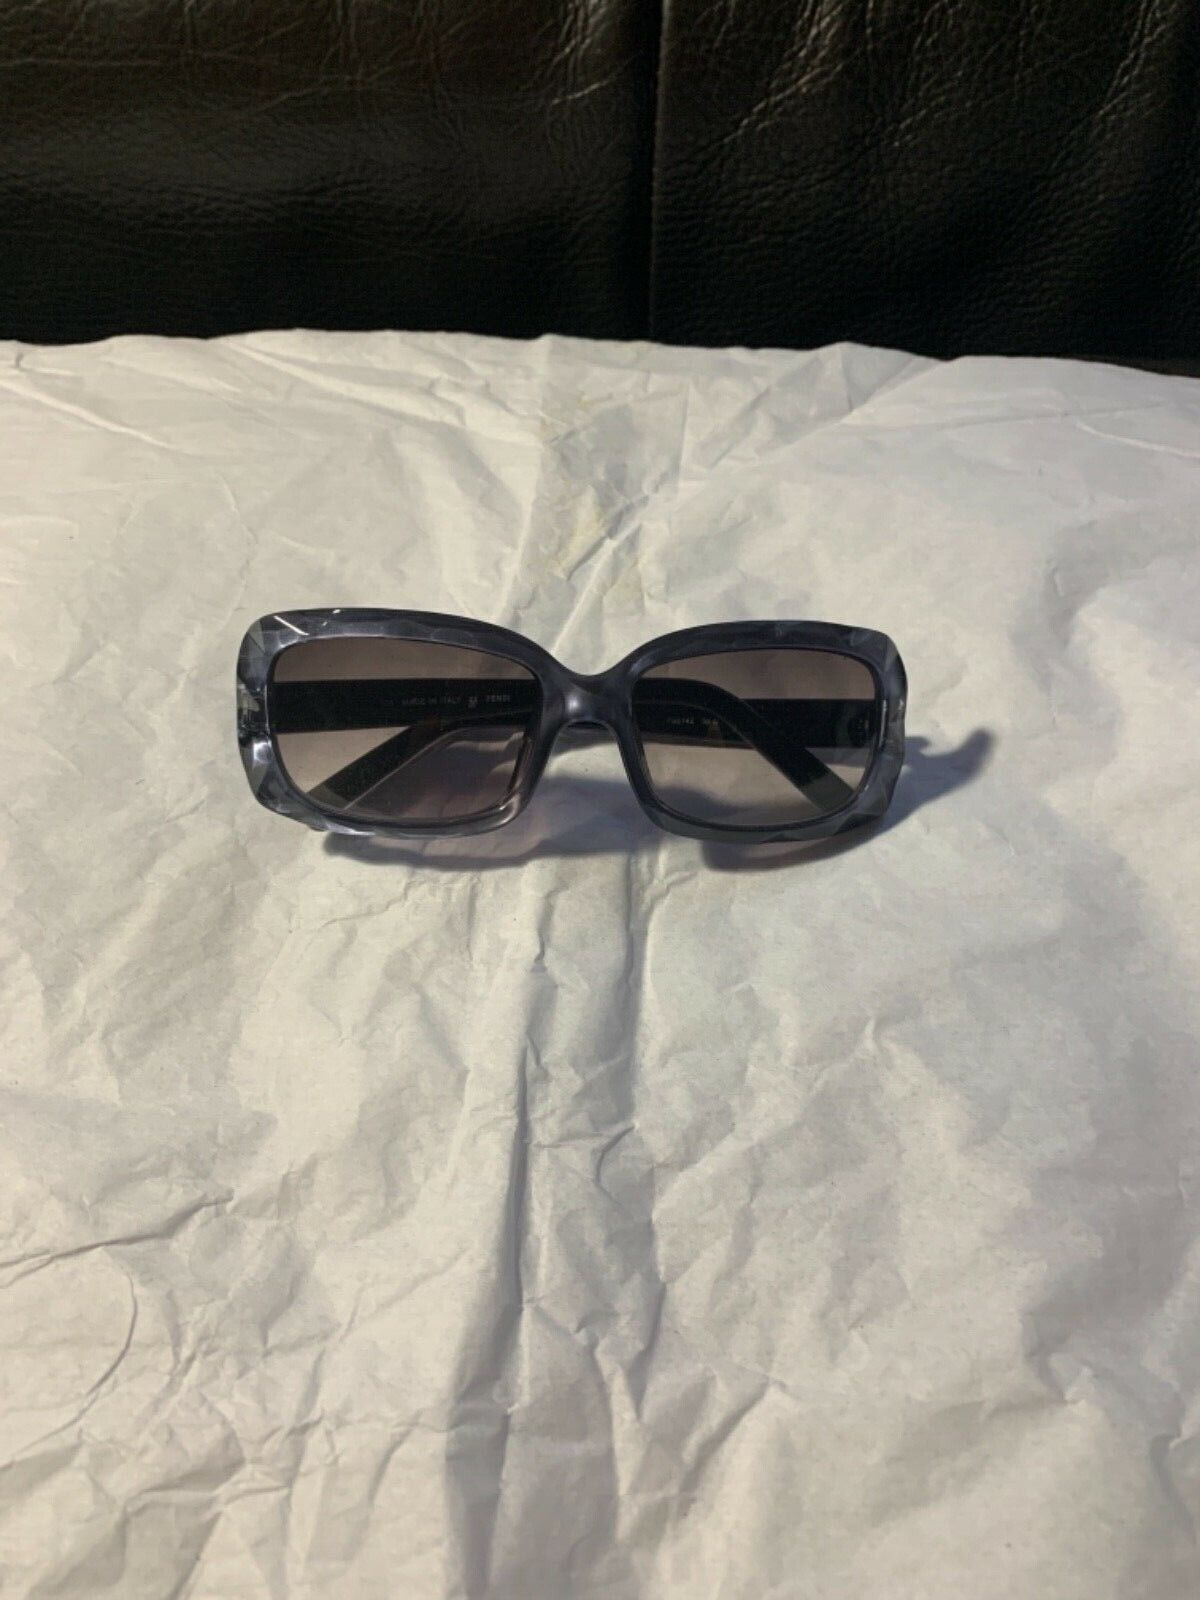 Authentic Fendi shades preowned in excellent condition